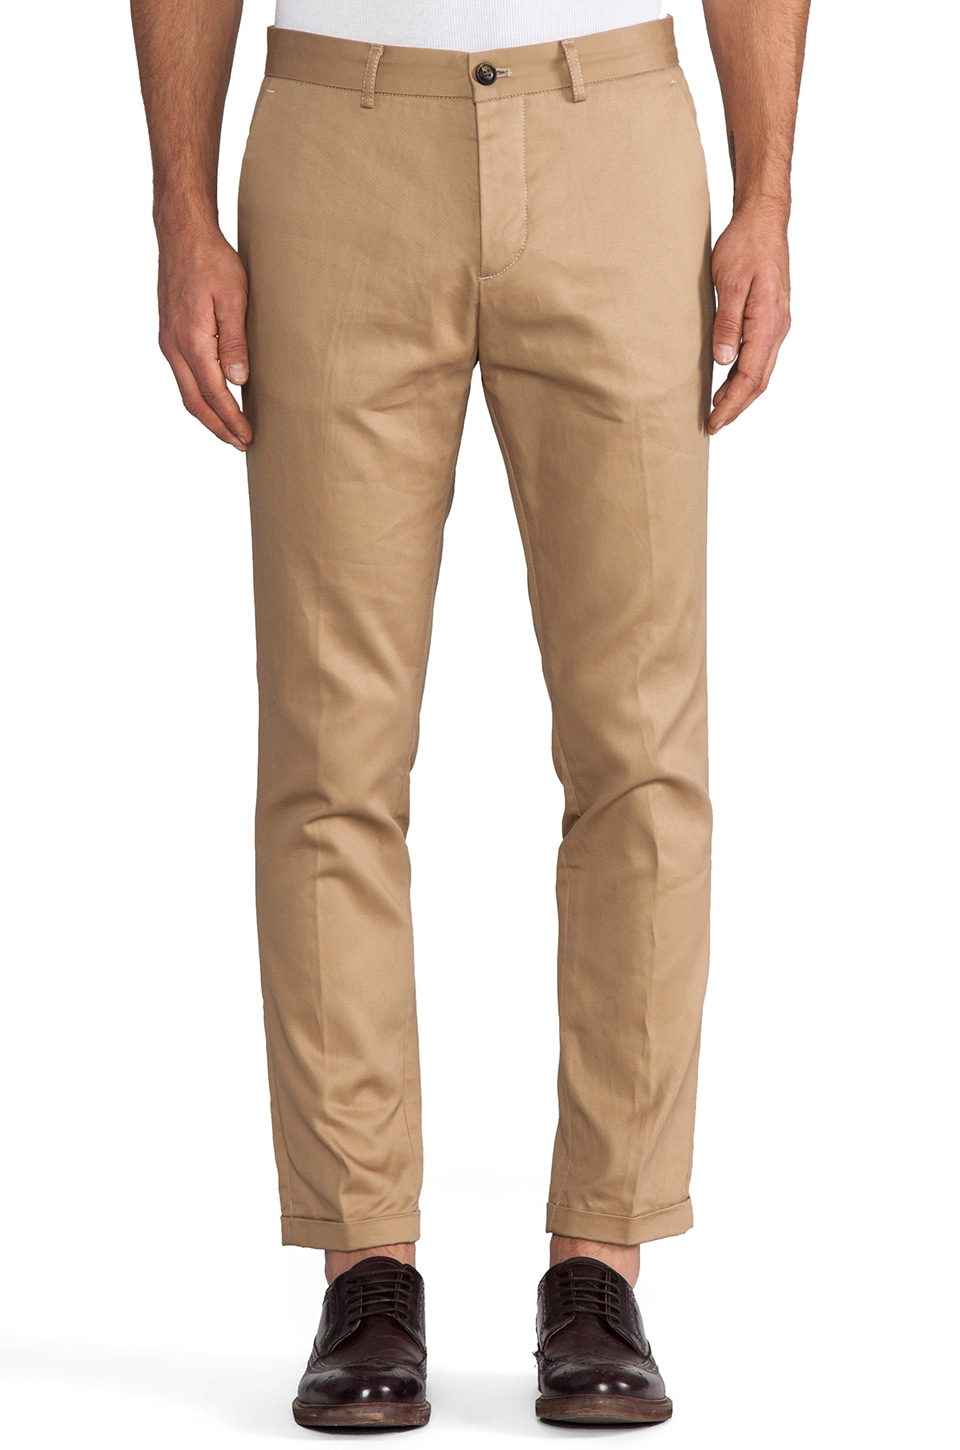 Scotch & Soda Japanese Chino in Sand